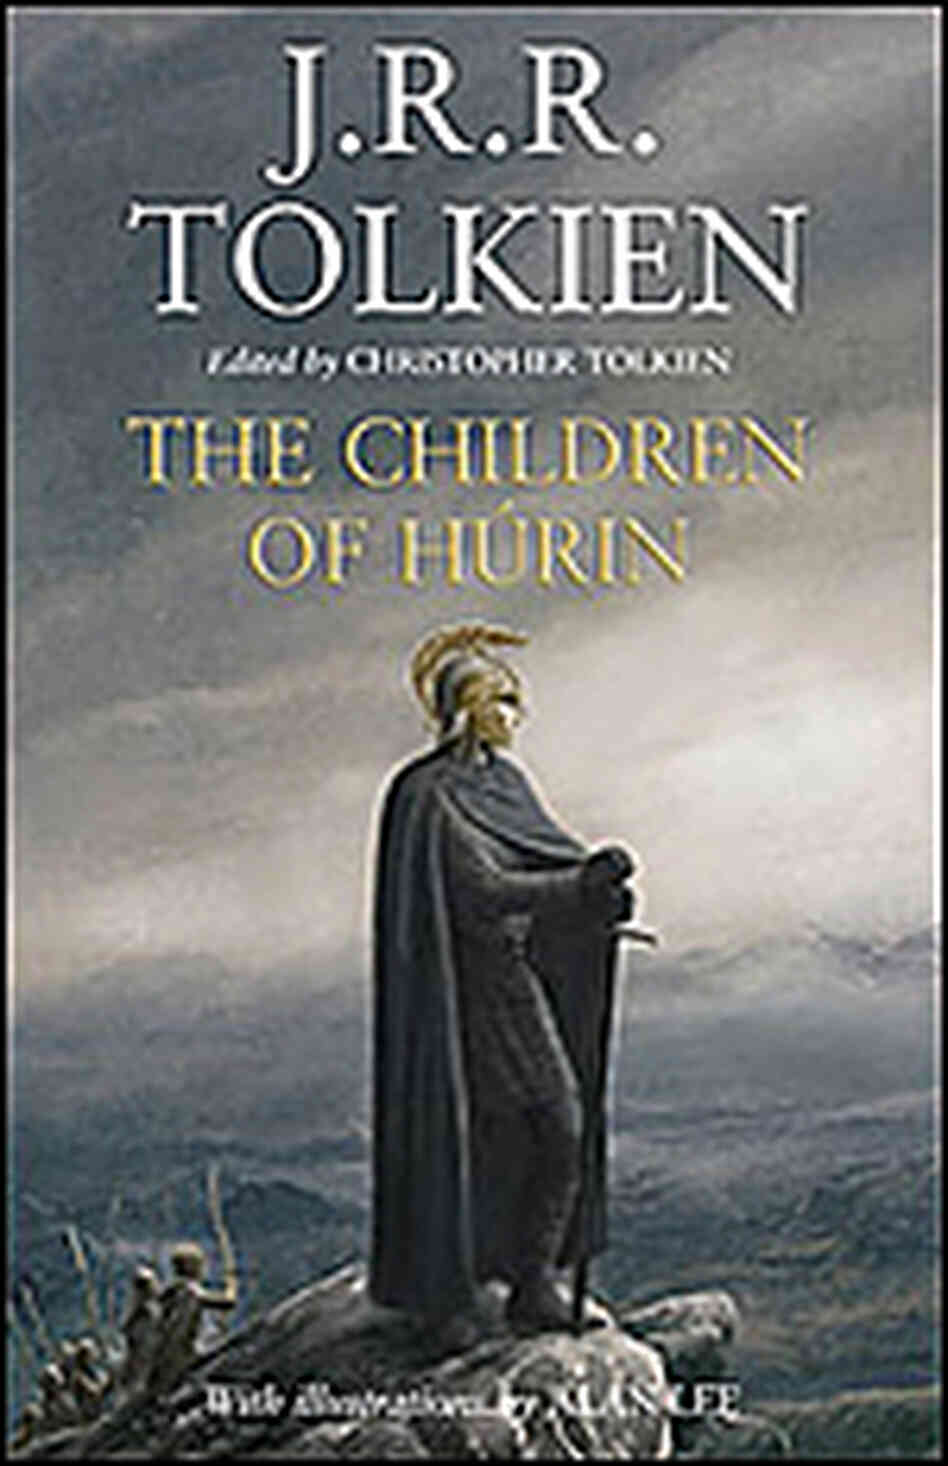 'Children of Hurin'